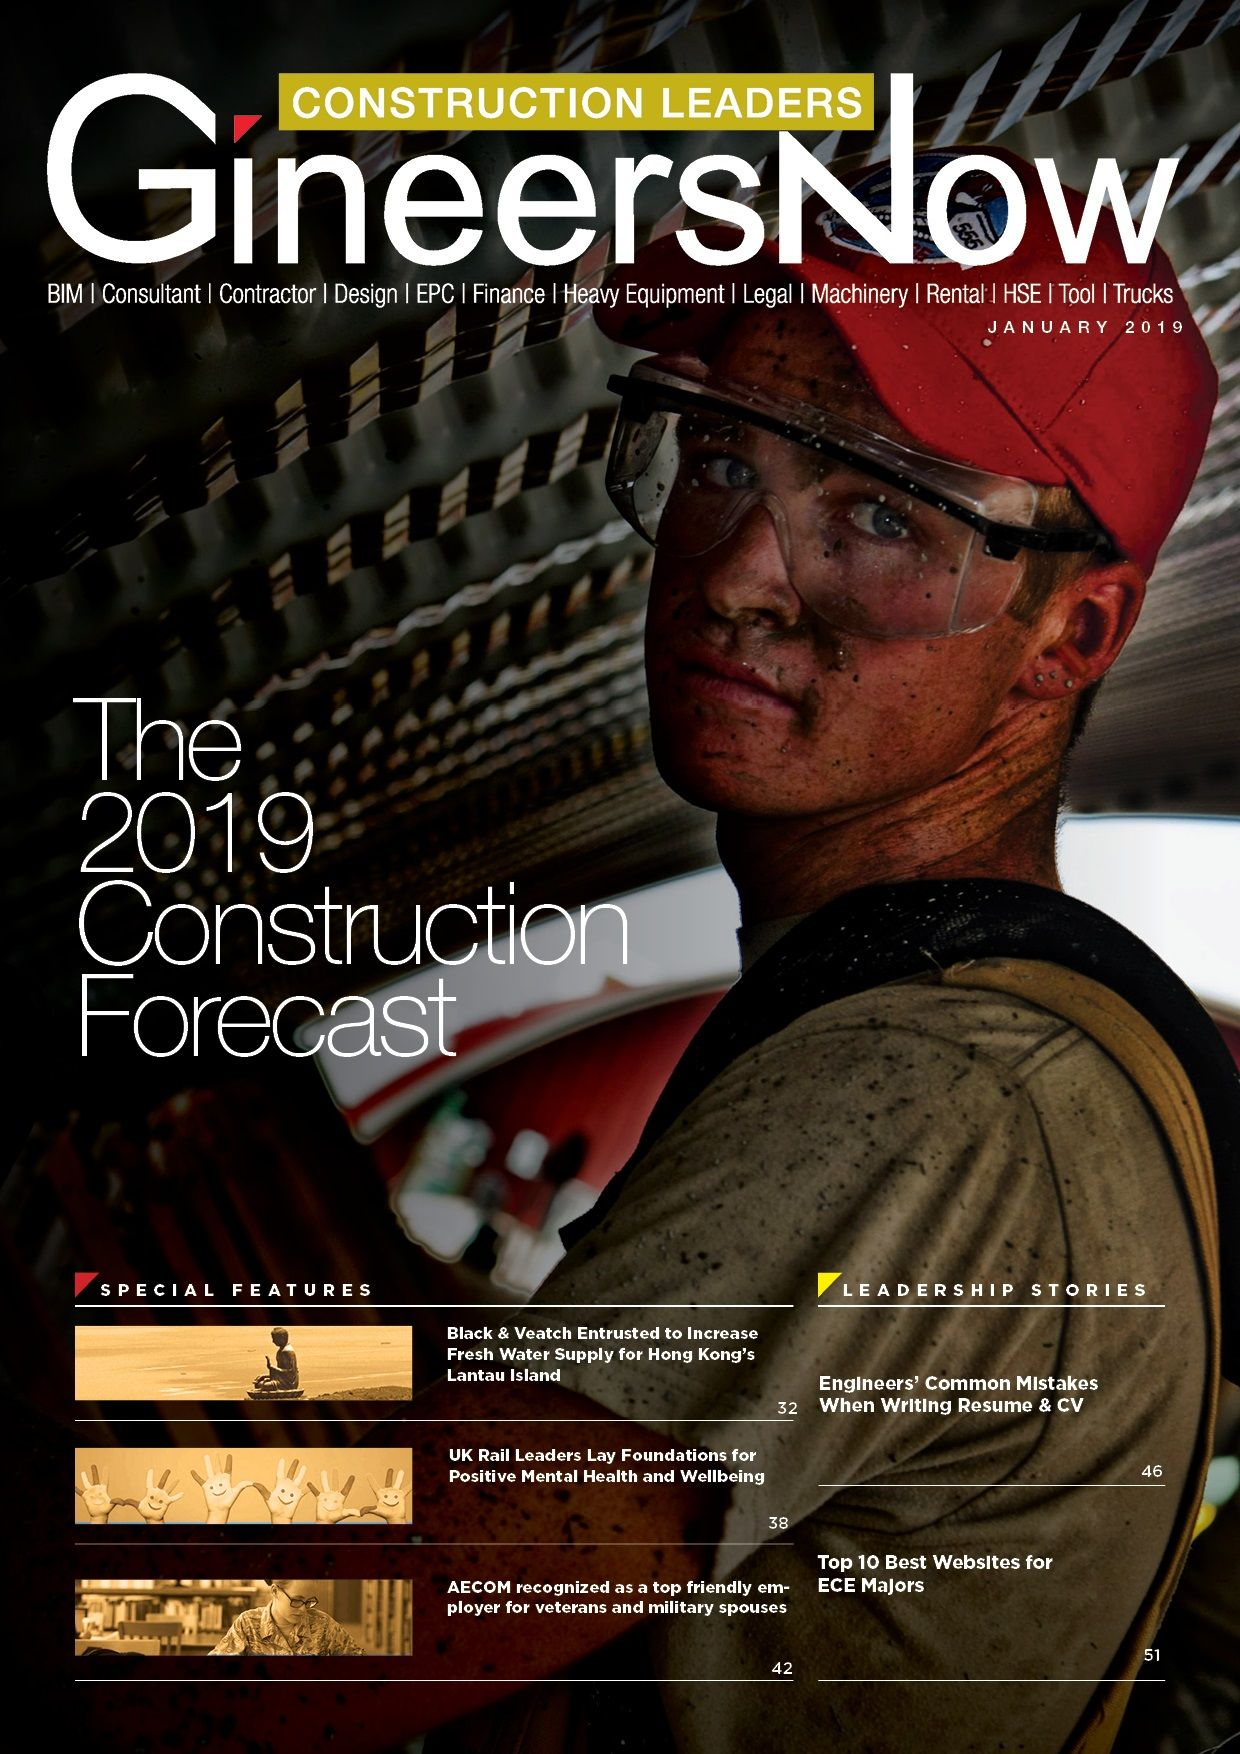 2019 Construction Industry Forecast and Analysis